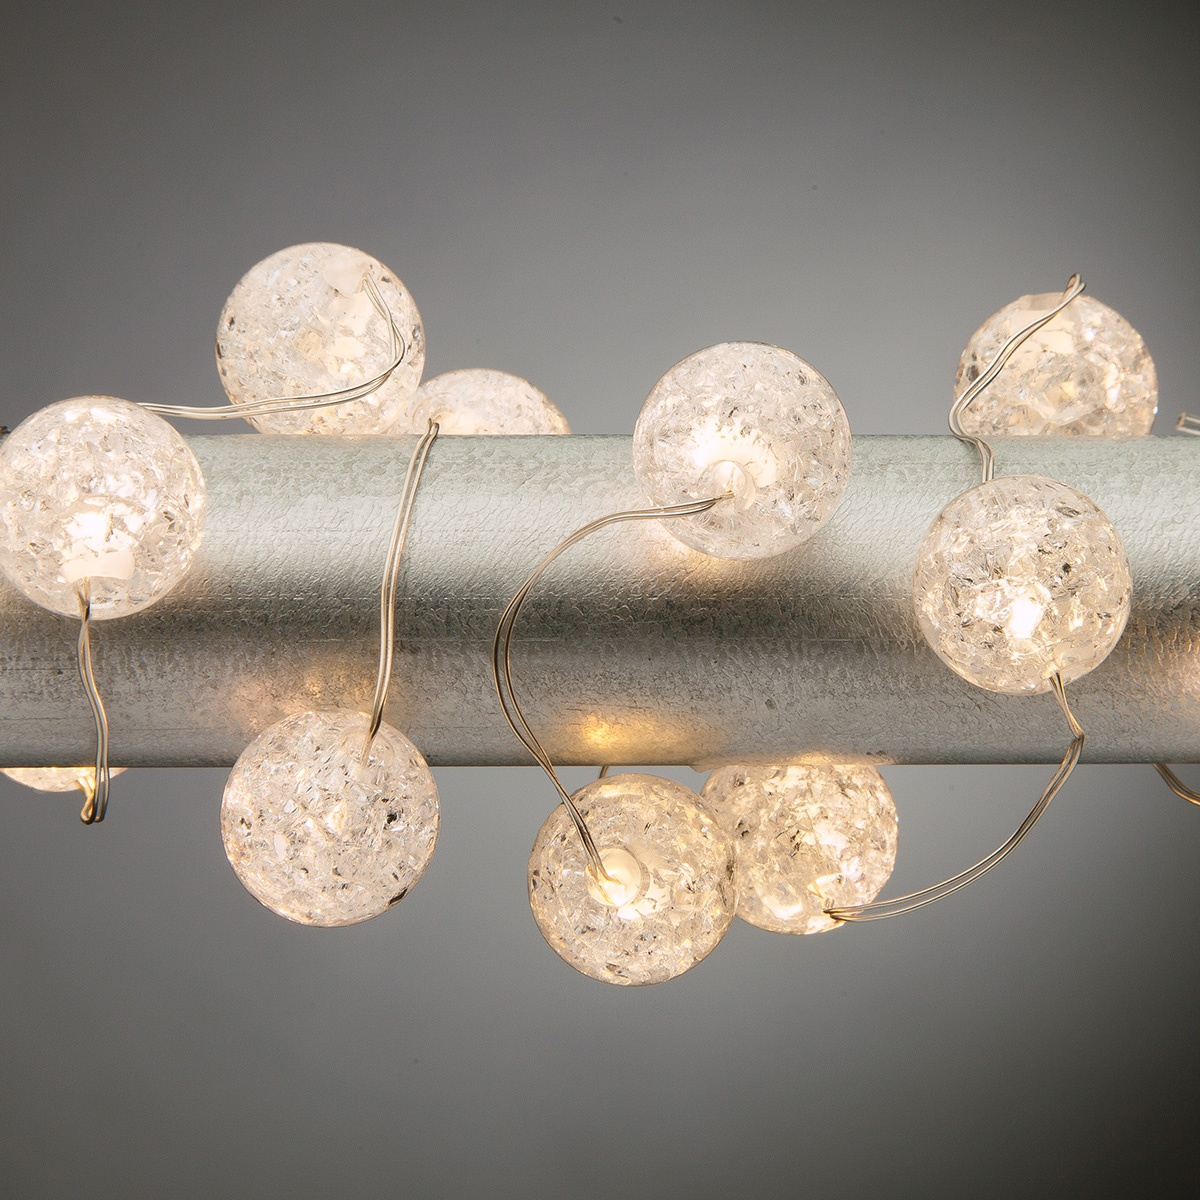 10' Crackle Bead LED Fairy Lights, Warm White, Silver Wire ...